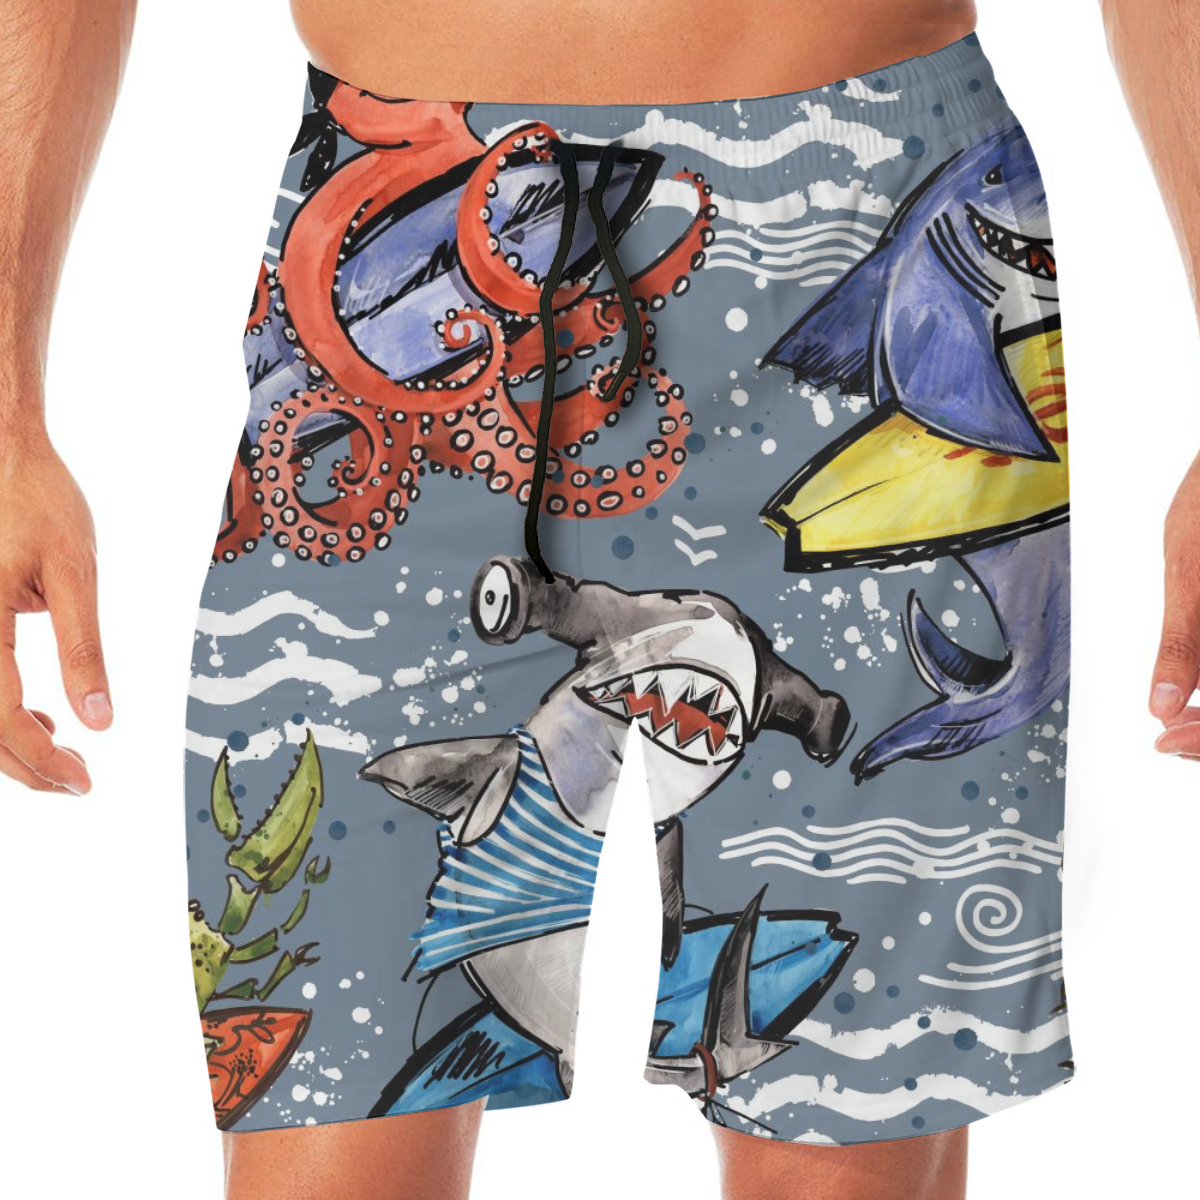 Cartoon Surf Shark Octopus Men's Beach Pants Quick Drying Beach Shorts Swimming Surfing Boating Water Sports Trunks